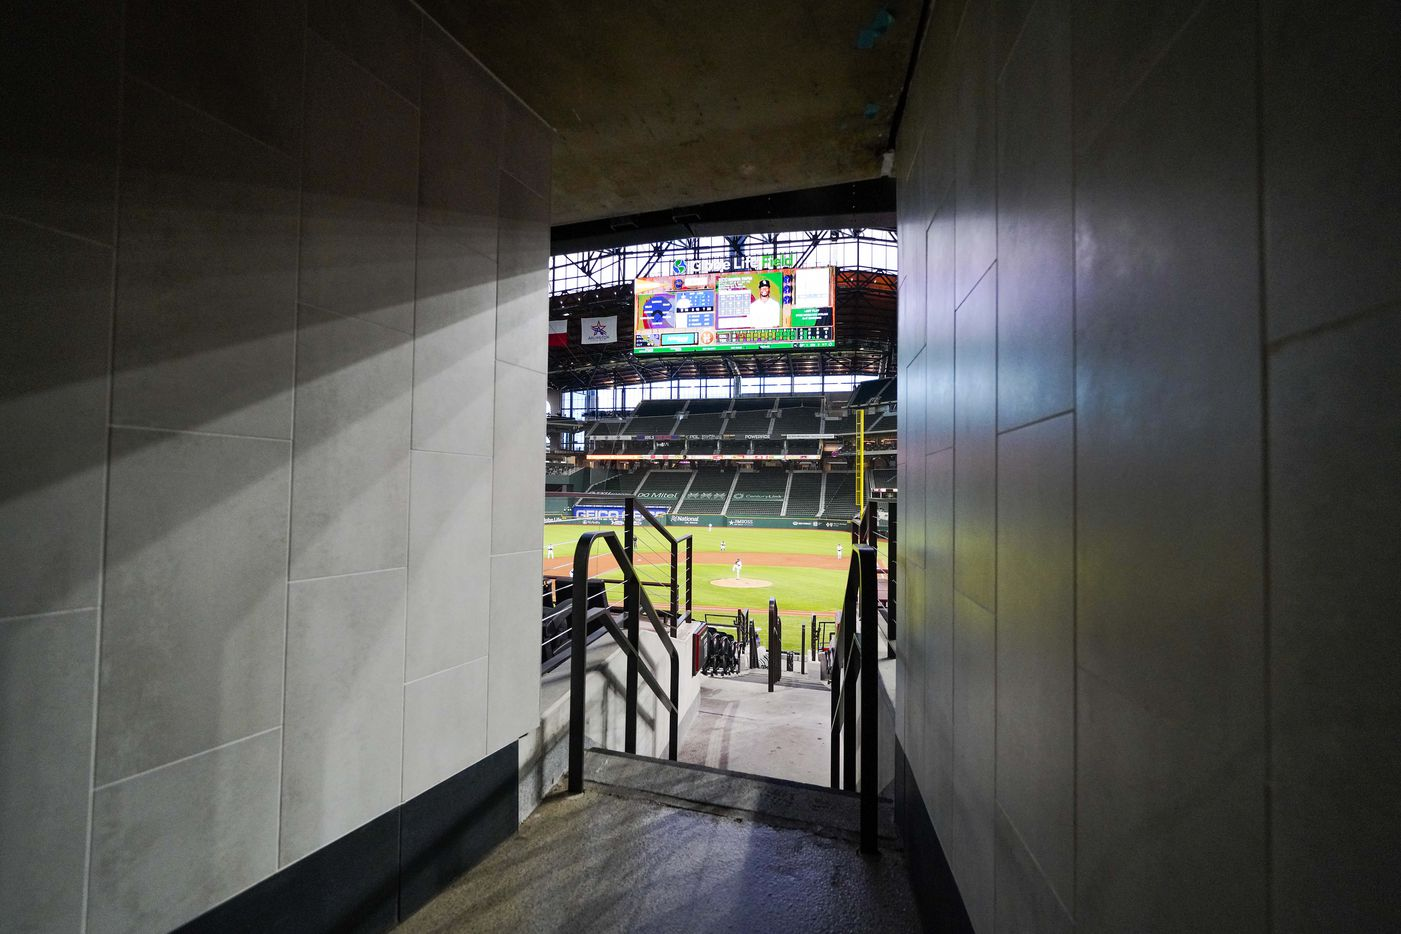 The playing field is sunken below ground level, giving patrons a sweeping view as they enter the seating areas of Globe Life Field from the concourse.